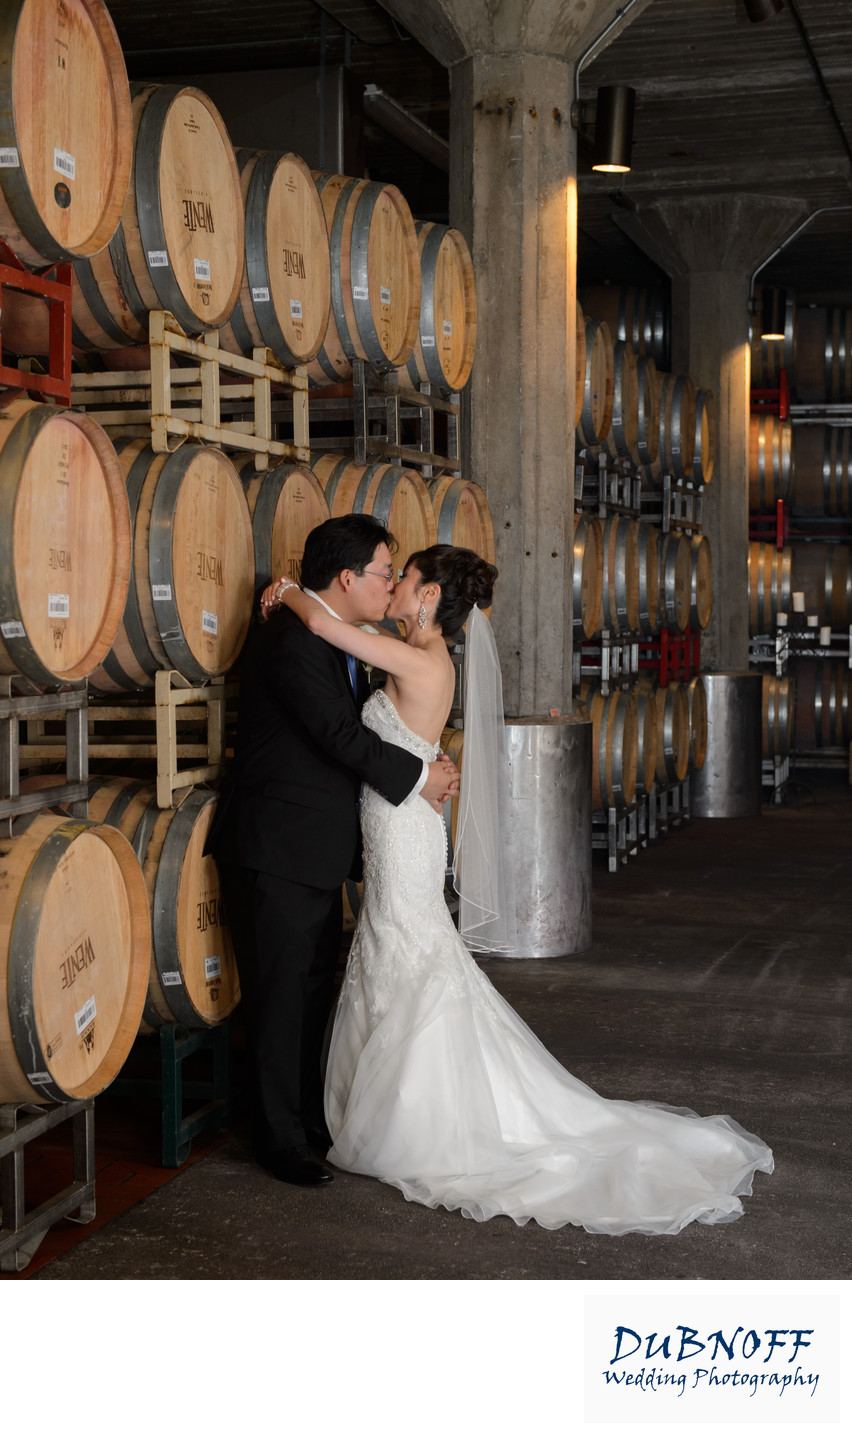 Wedding Photography in the Cellar Room at Wente Winery